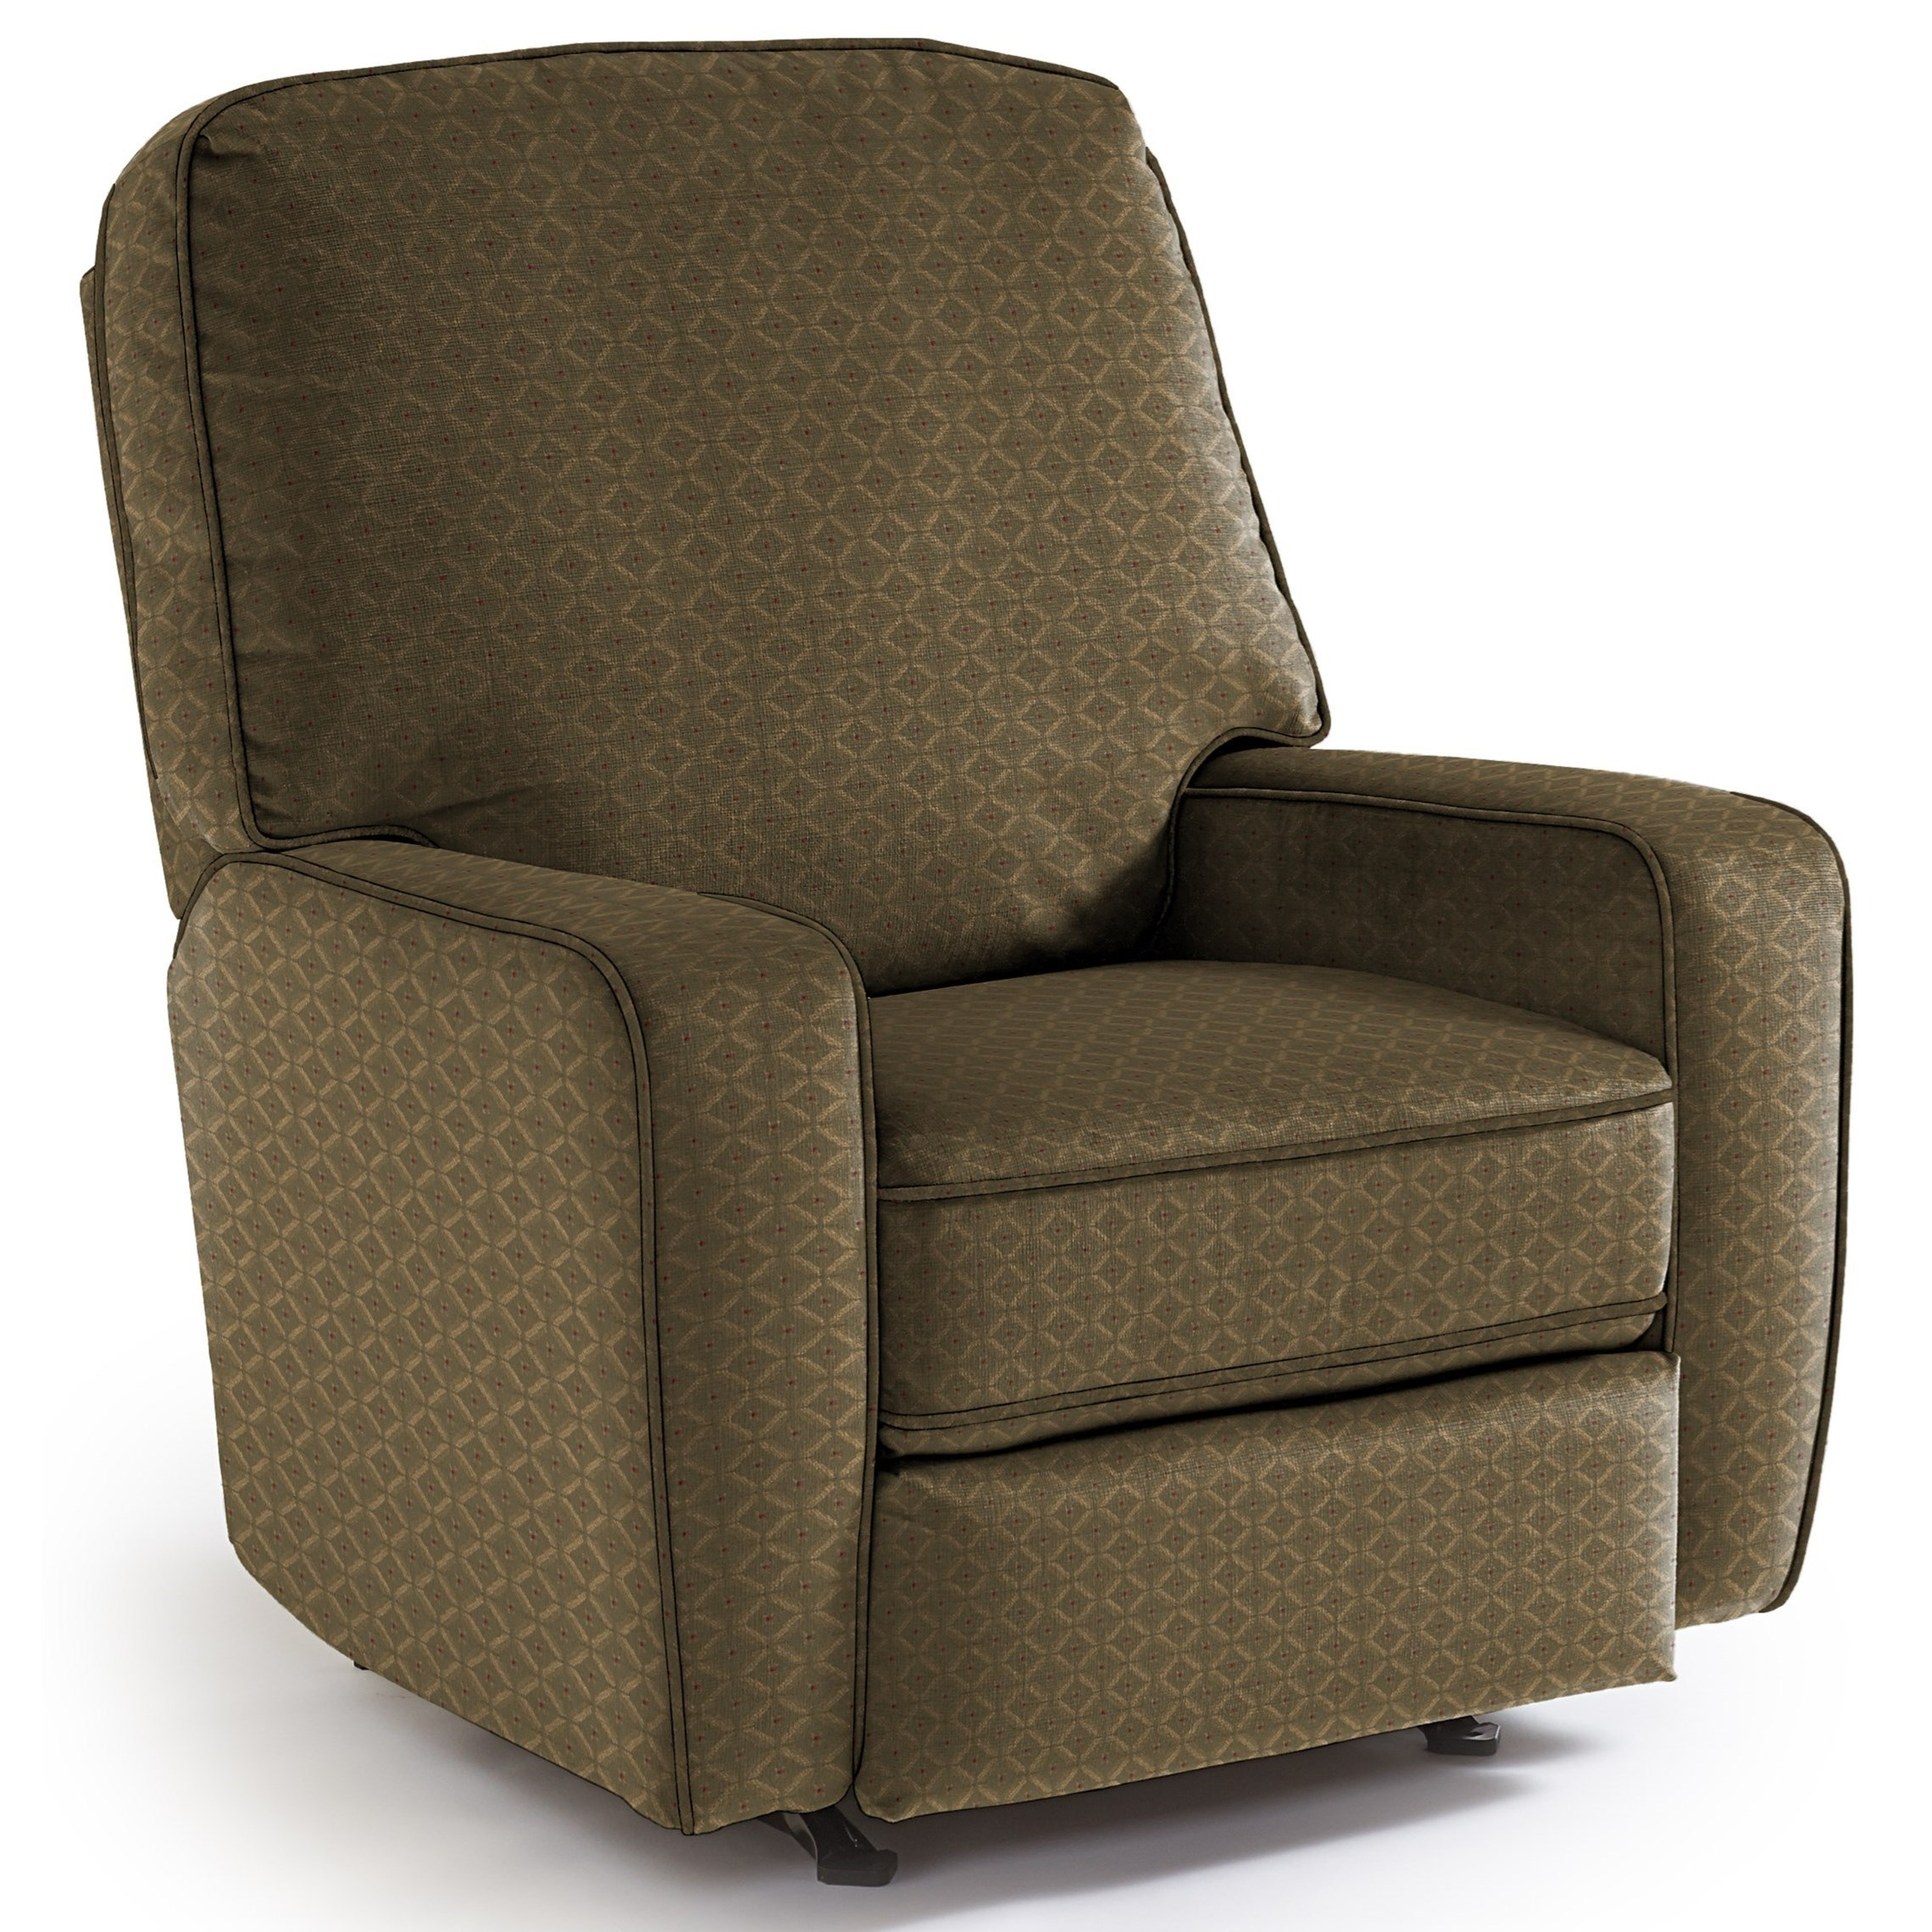 Best Home Furnishings Recliners - Medium Bilana Rocker Recliner - Item Number: 182270556-18021